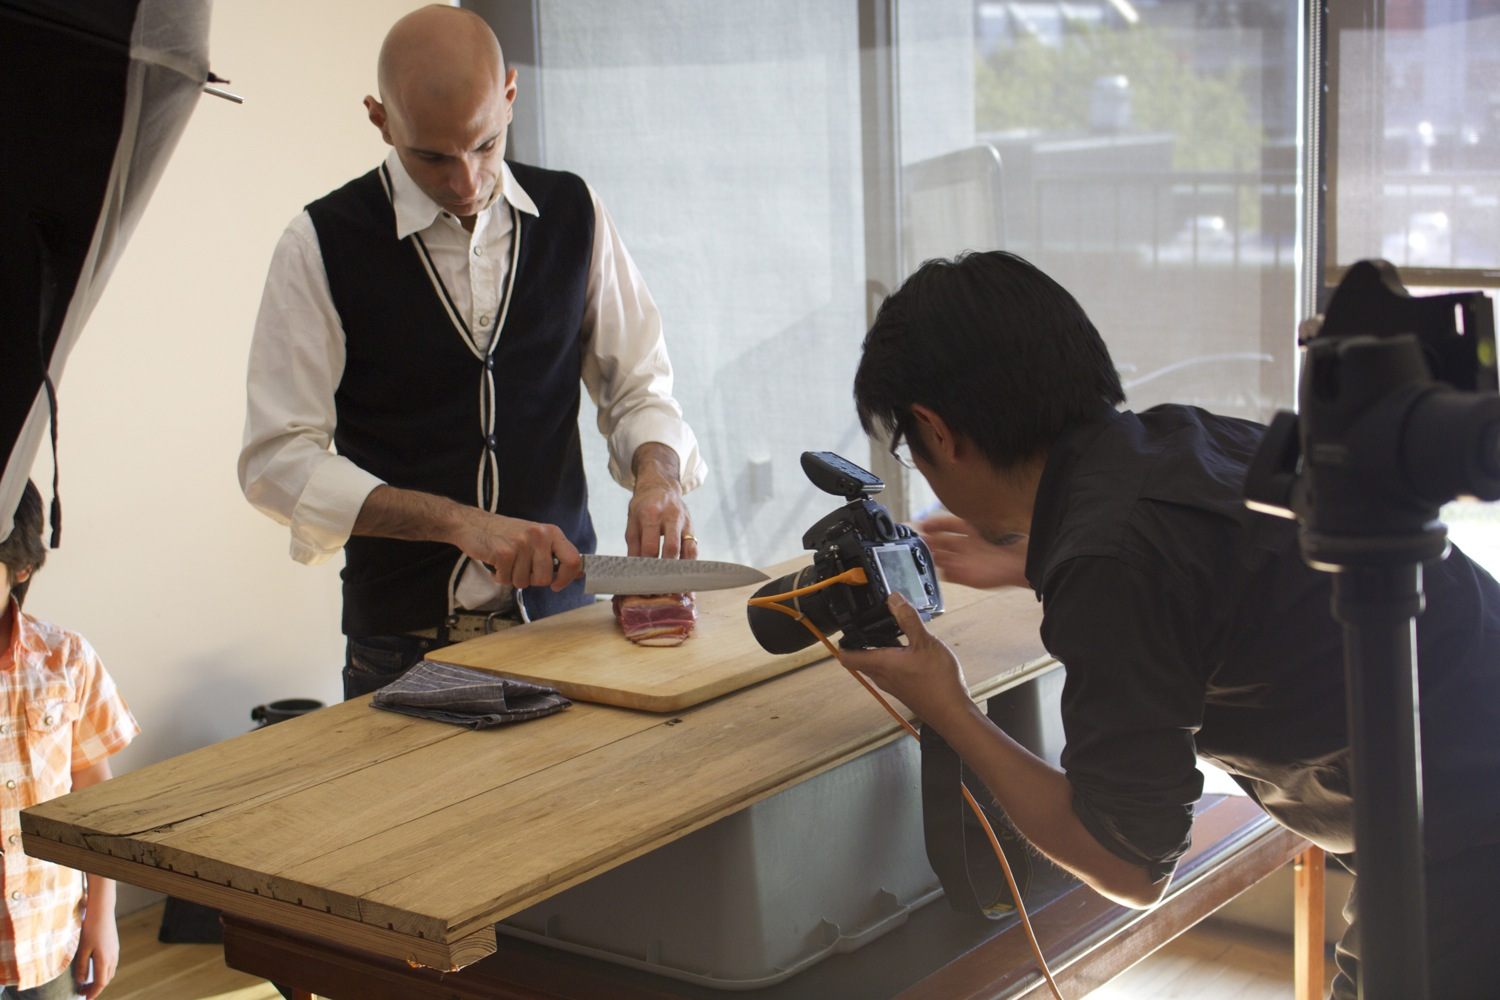 Chef Jehangir Mehta on set with photographer Evan Sung